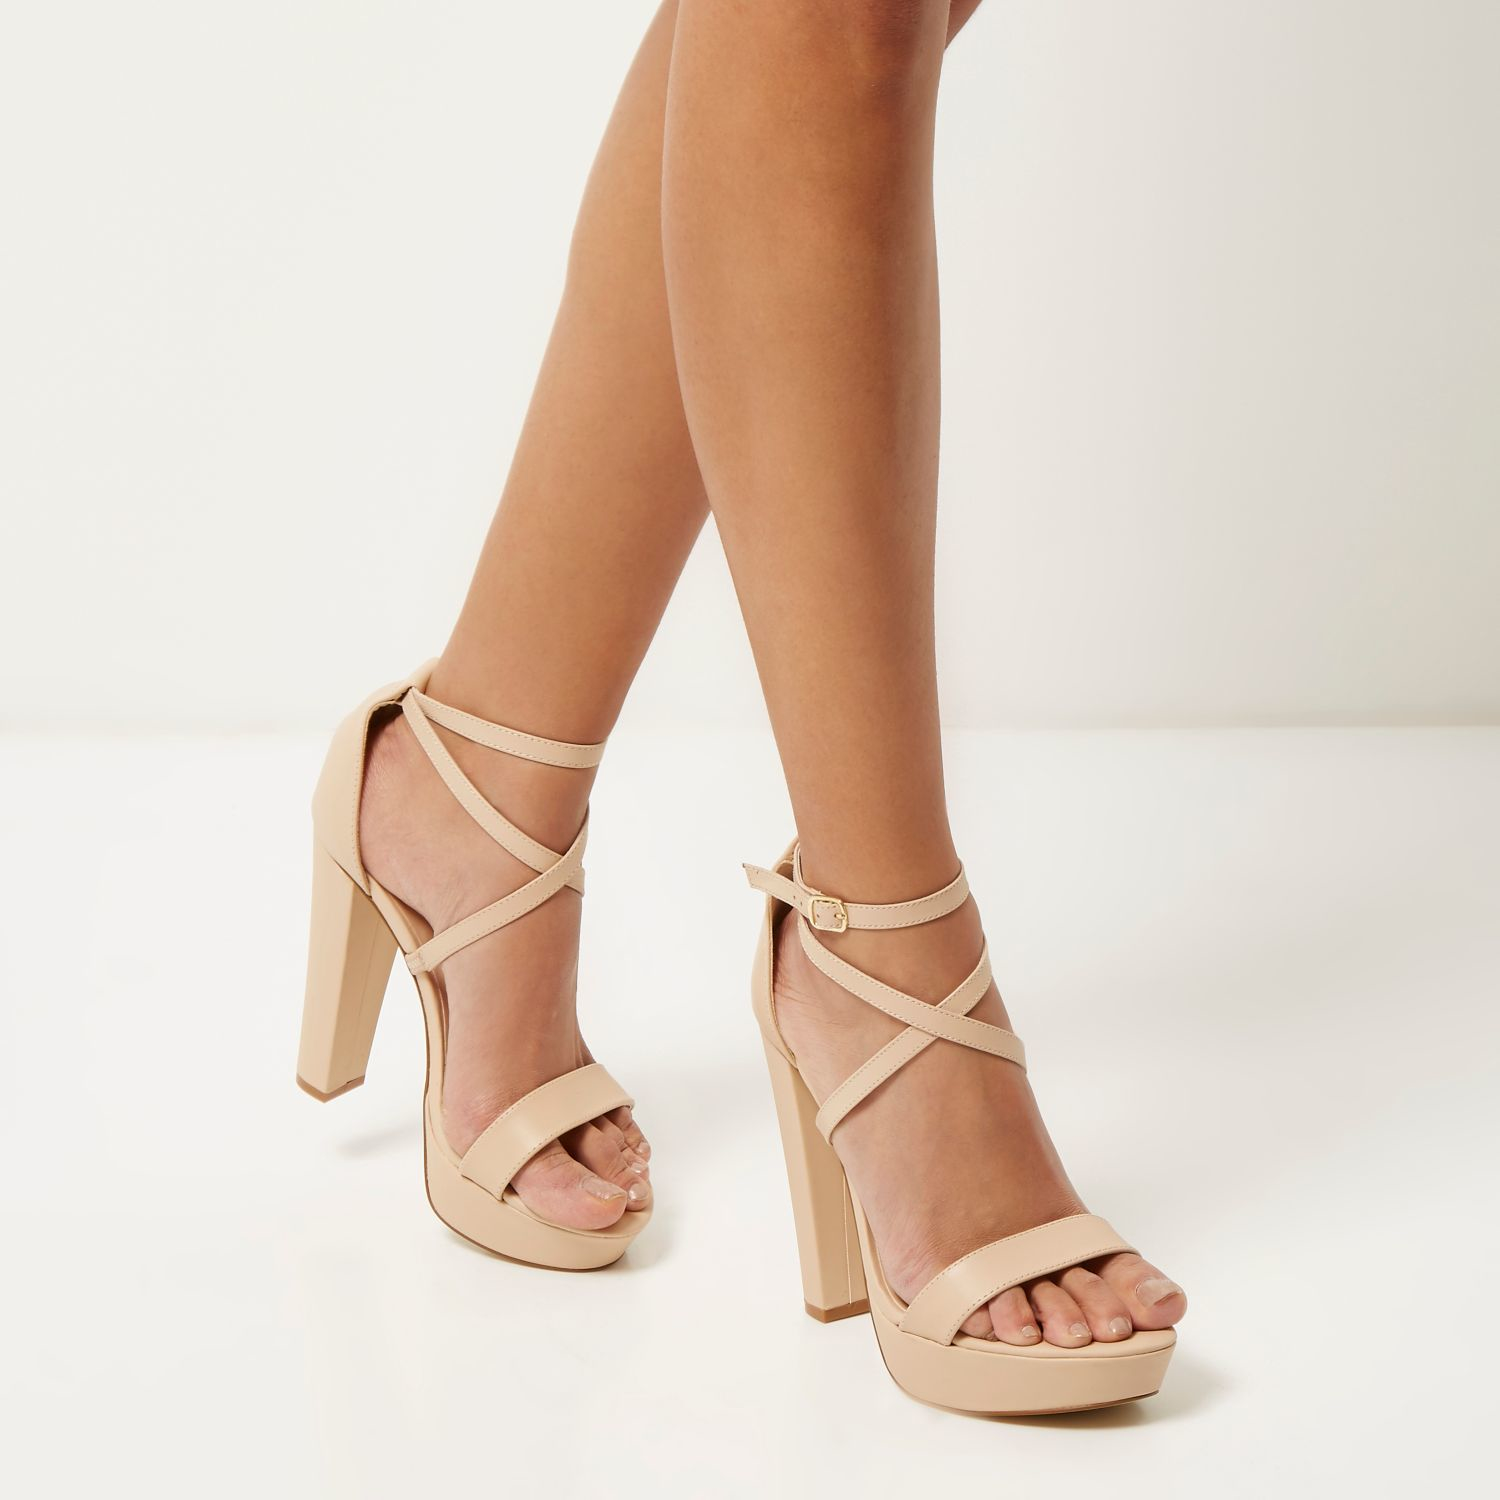 River Island Light Pink Leather Platform Heels In Pink Lyst